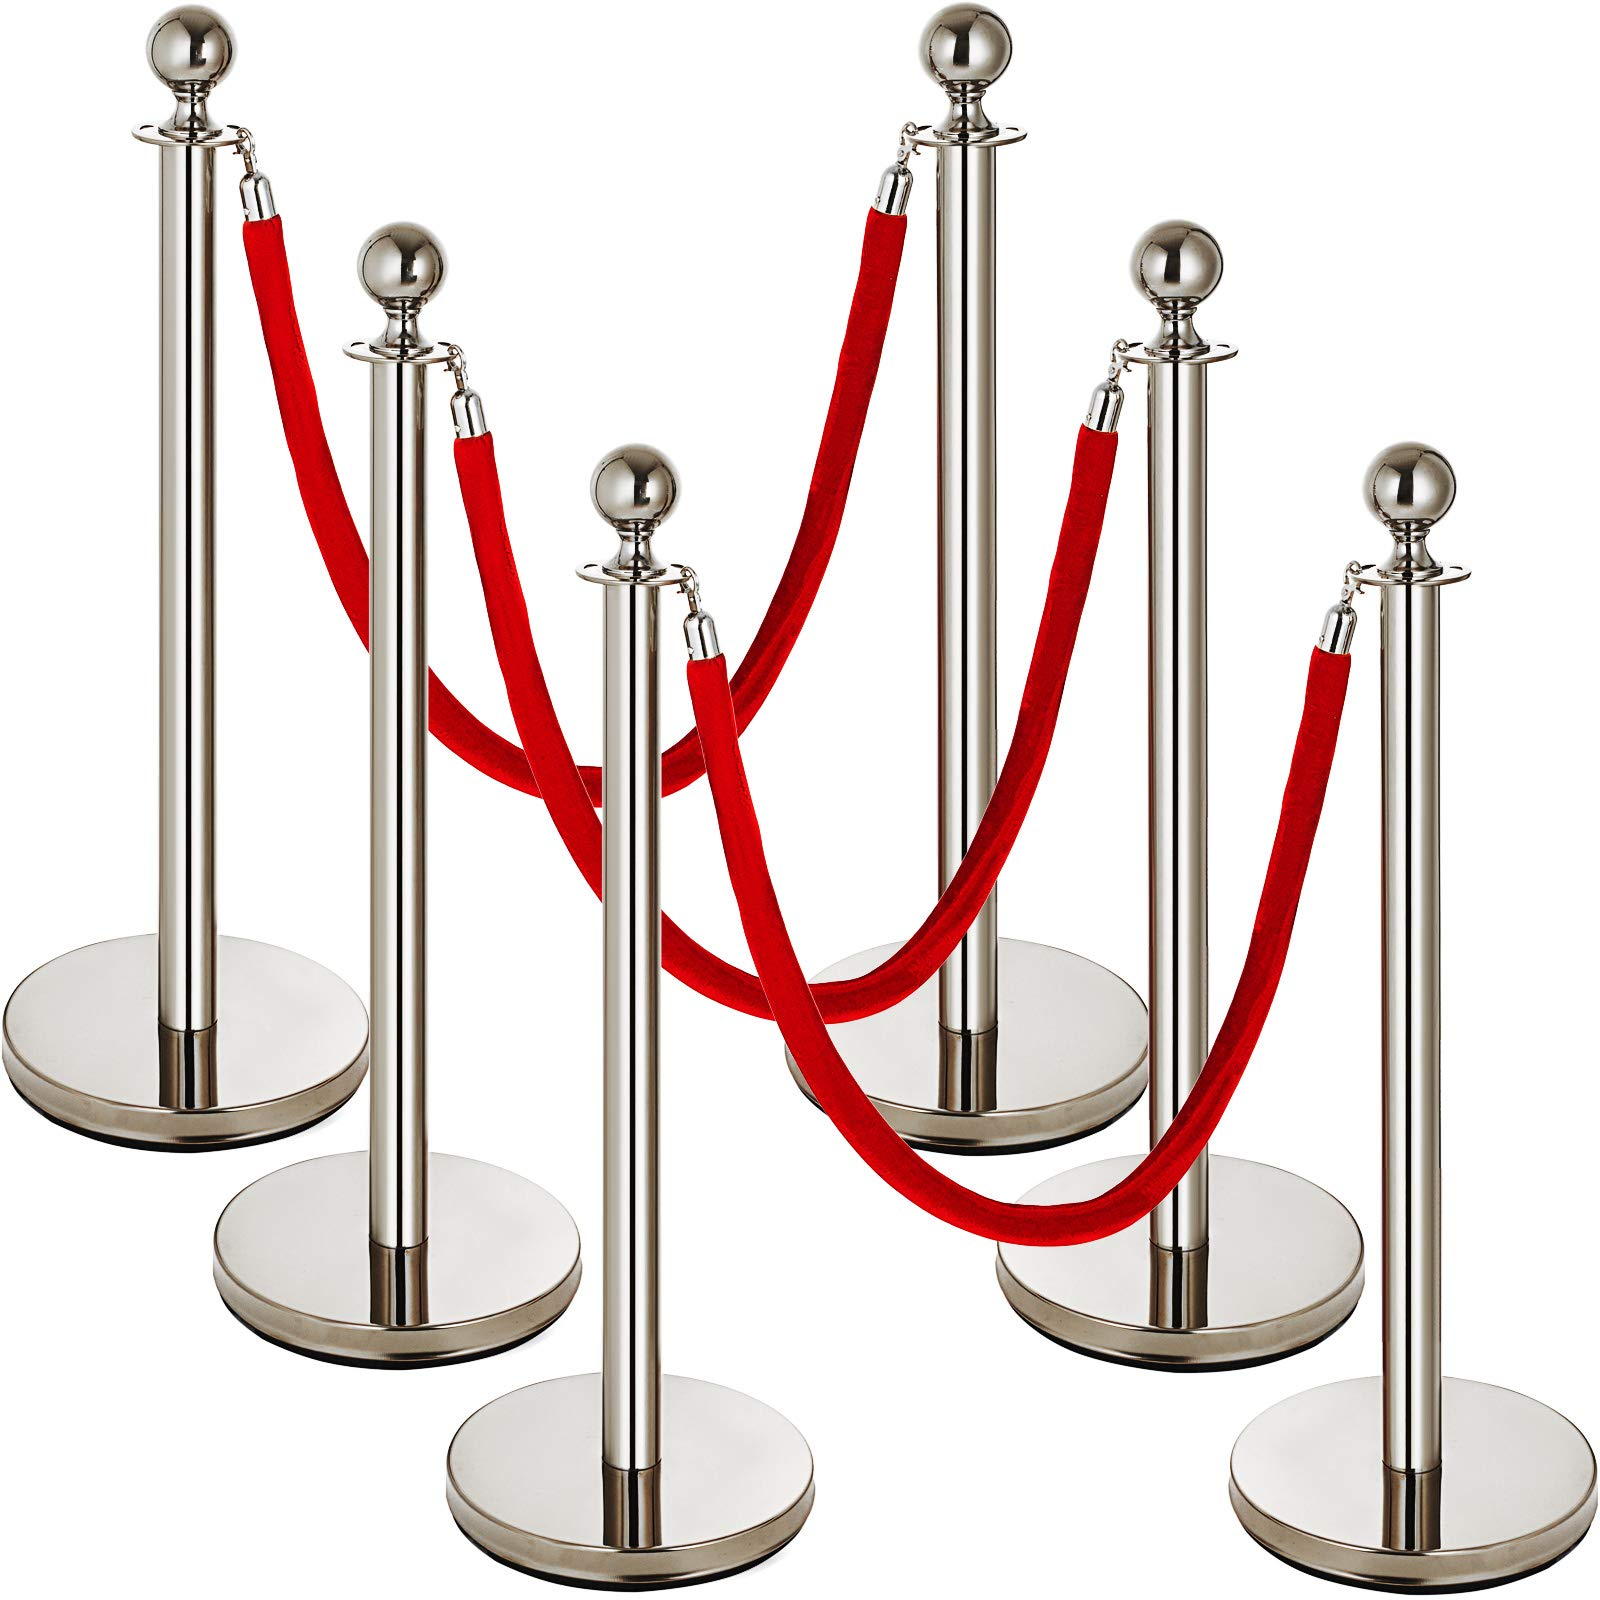 Mophorn 6 Pcs Stainless Steel Stanchion Post Queue Crowd Control Red Velvet Rope 38In Silver Crowd Control Barriers Queue Line by Mophorn